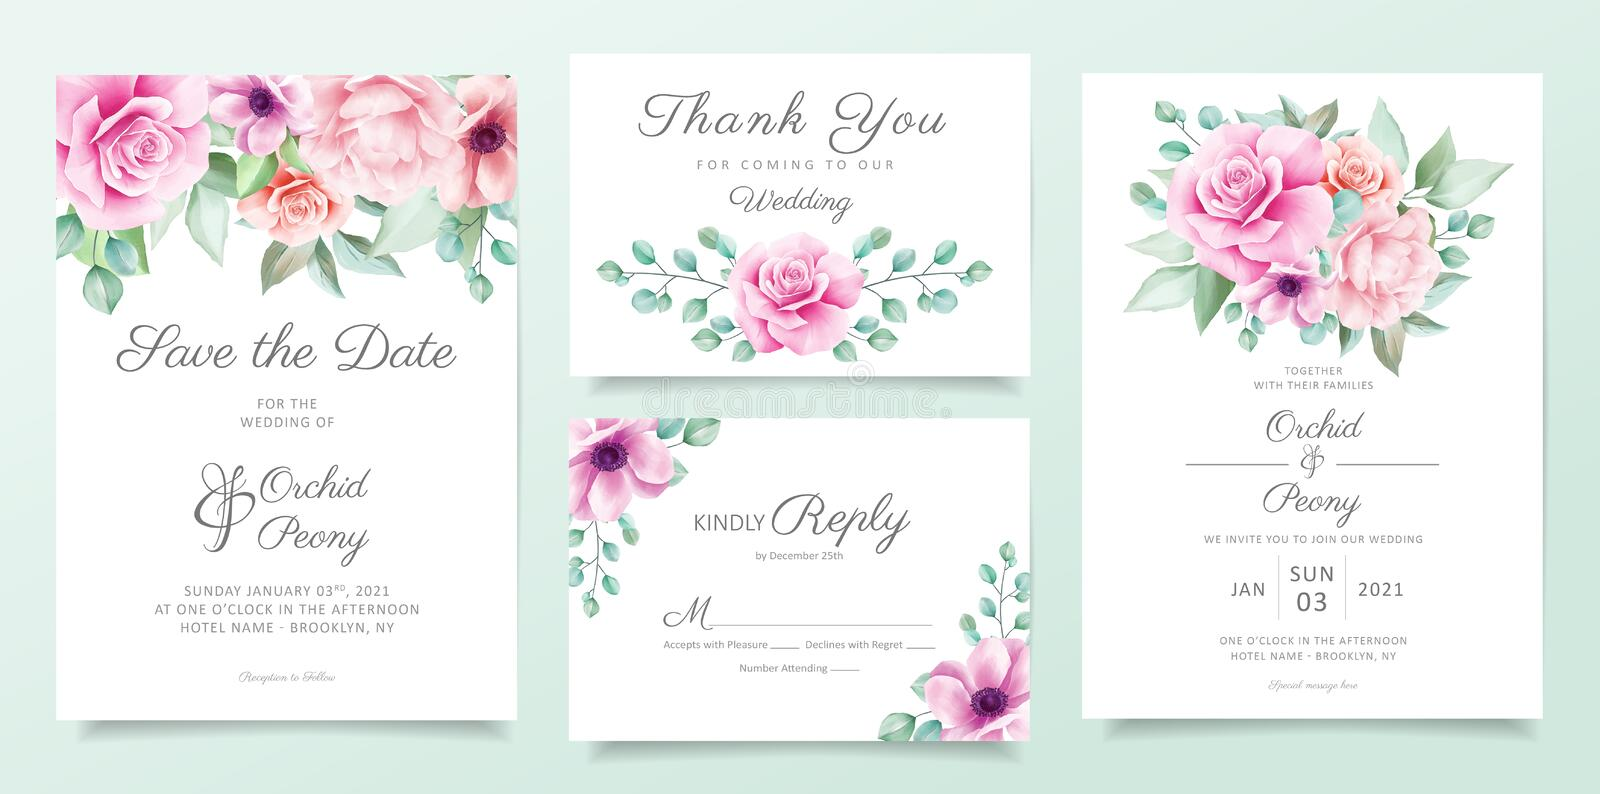 Elegant floral wedding invitation card template set with purple and pink flowers, leaves decoration. Botanical card background royalty free illustration